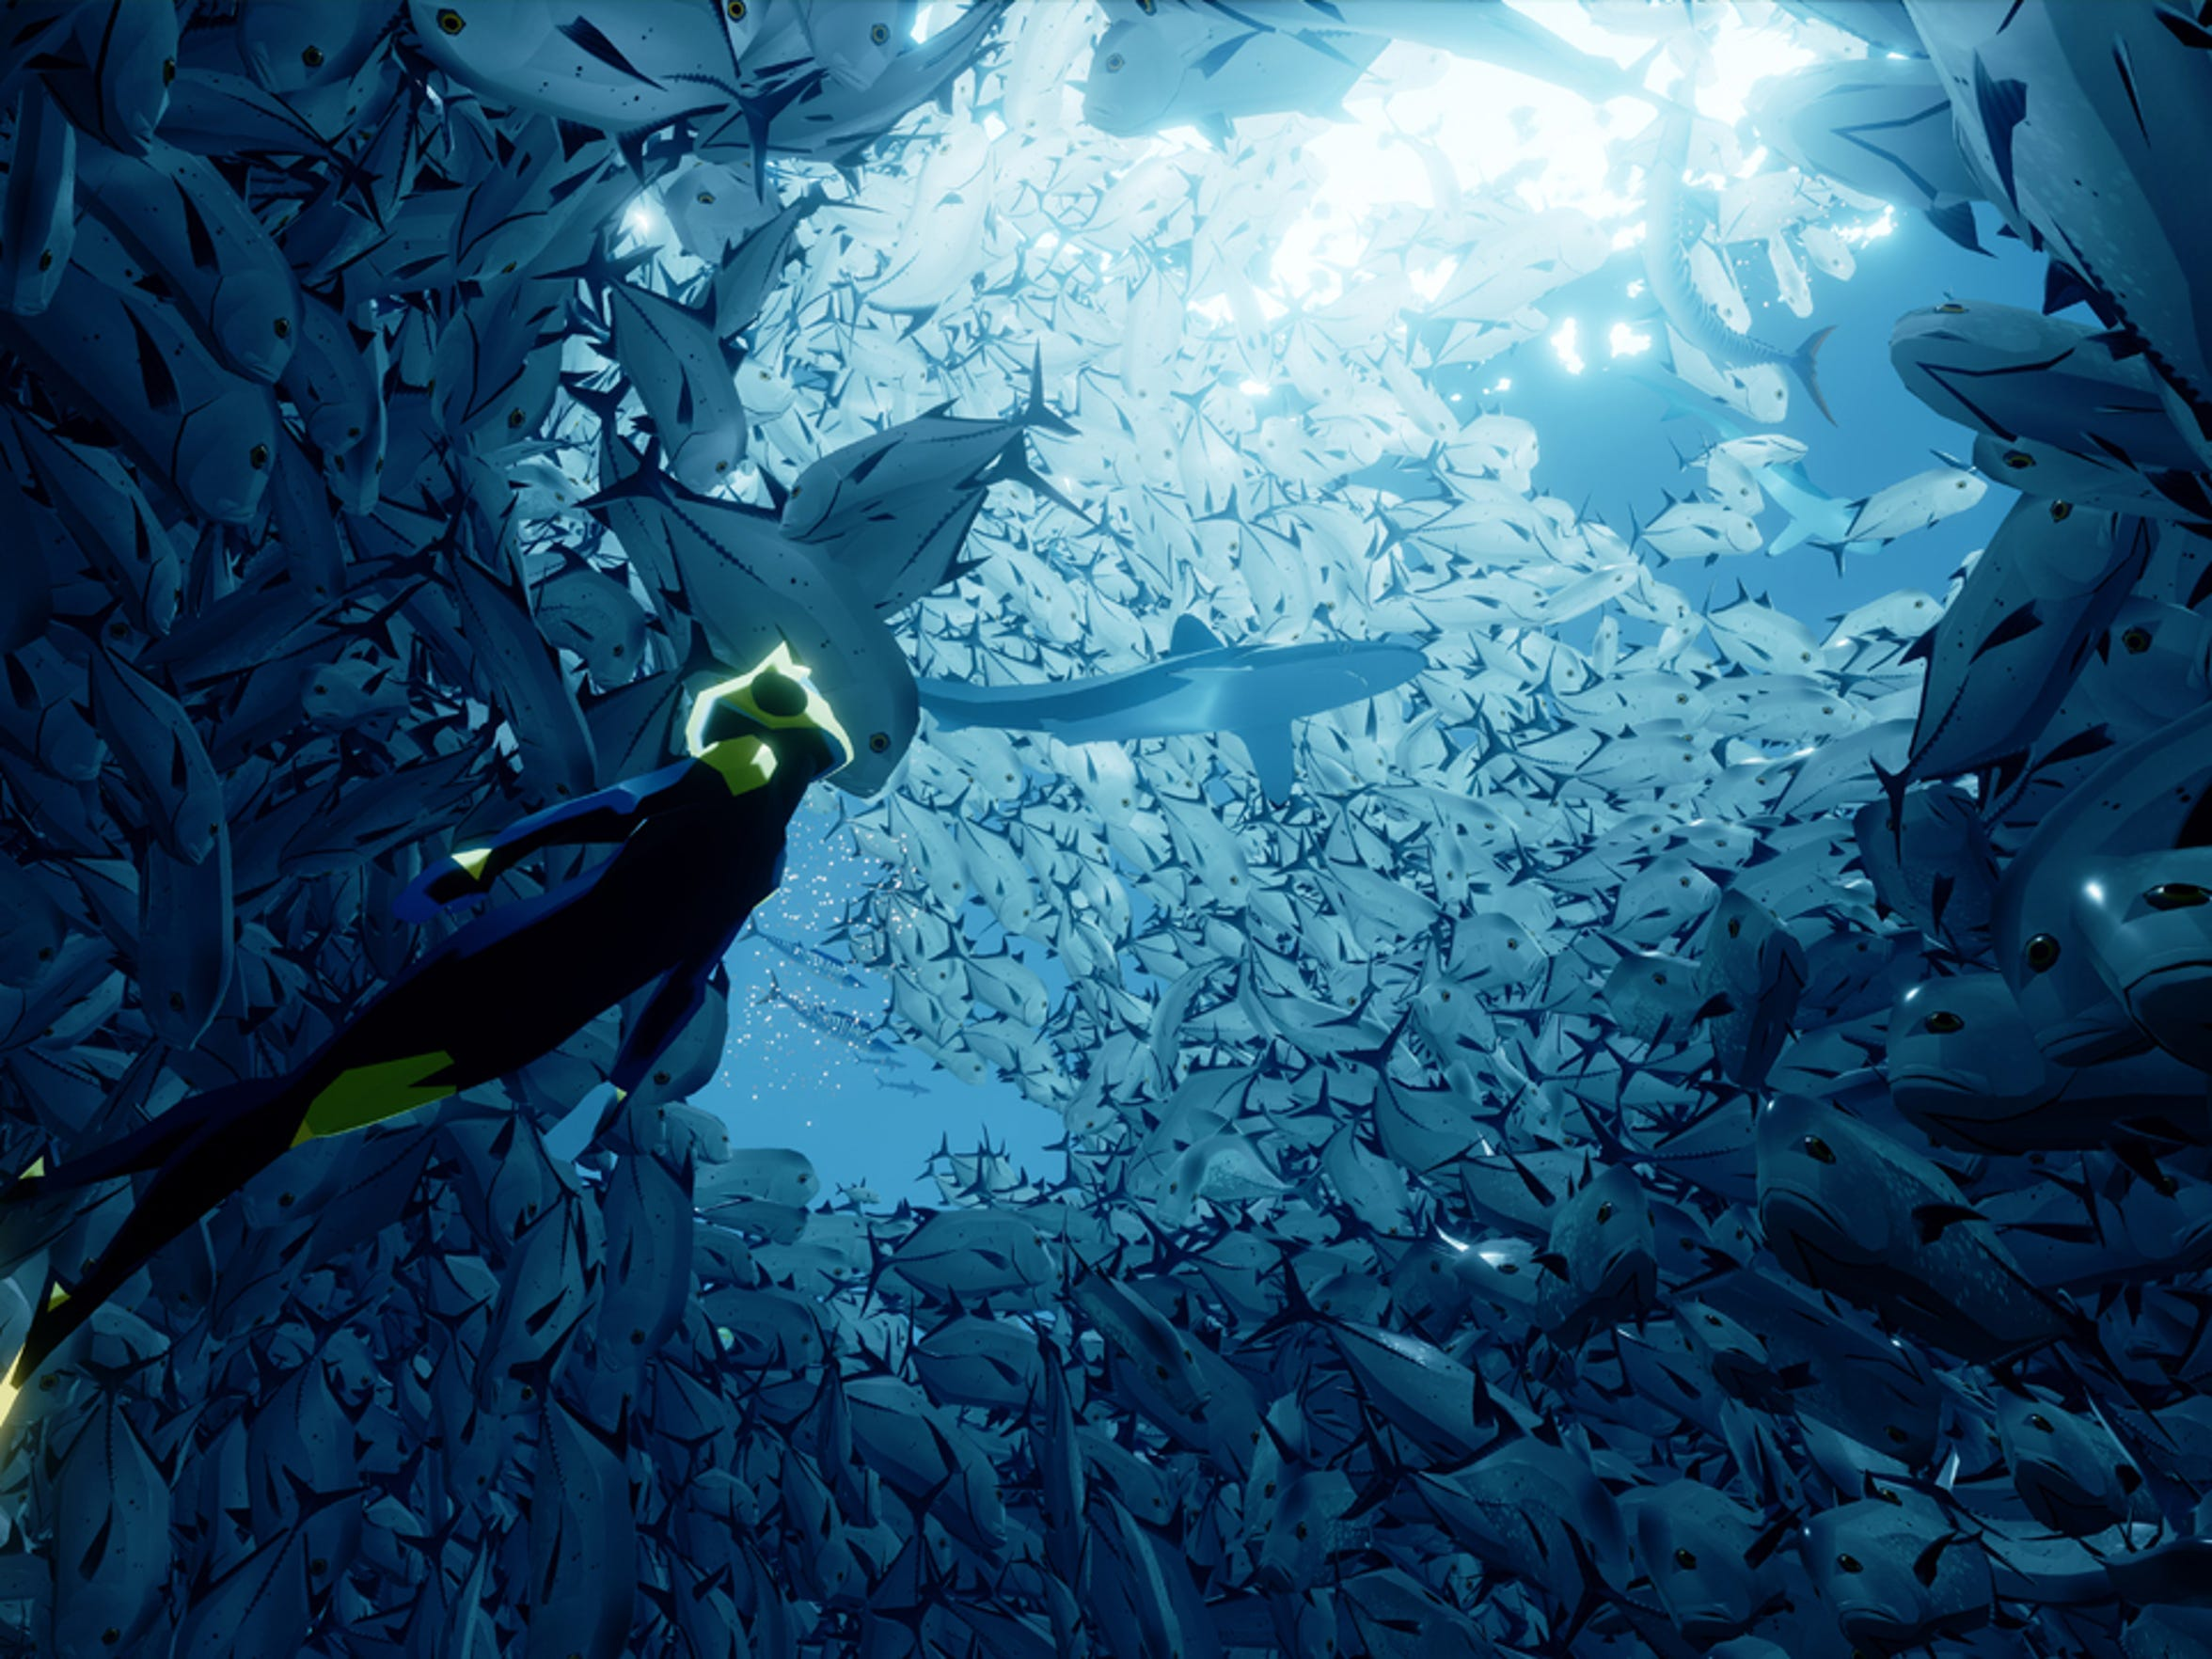 Incredible underwater visuals are Abzu's calling card.